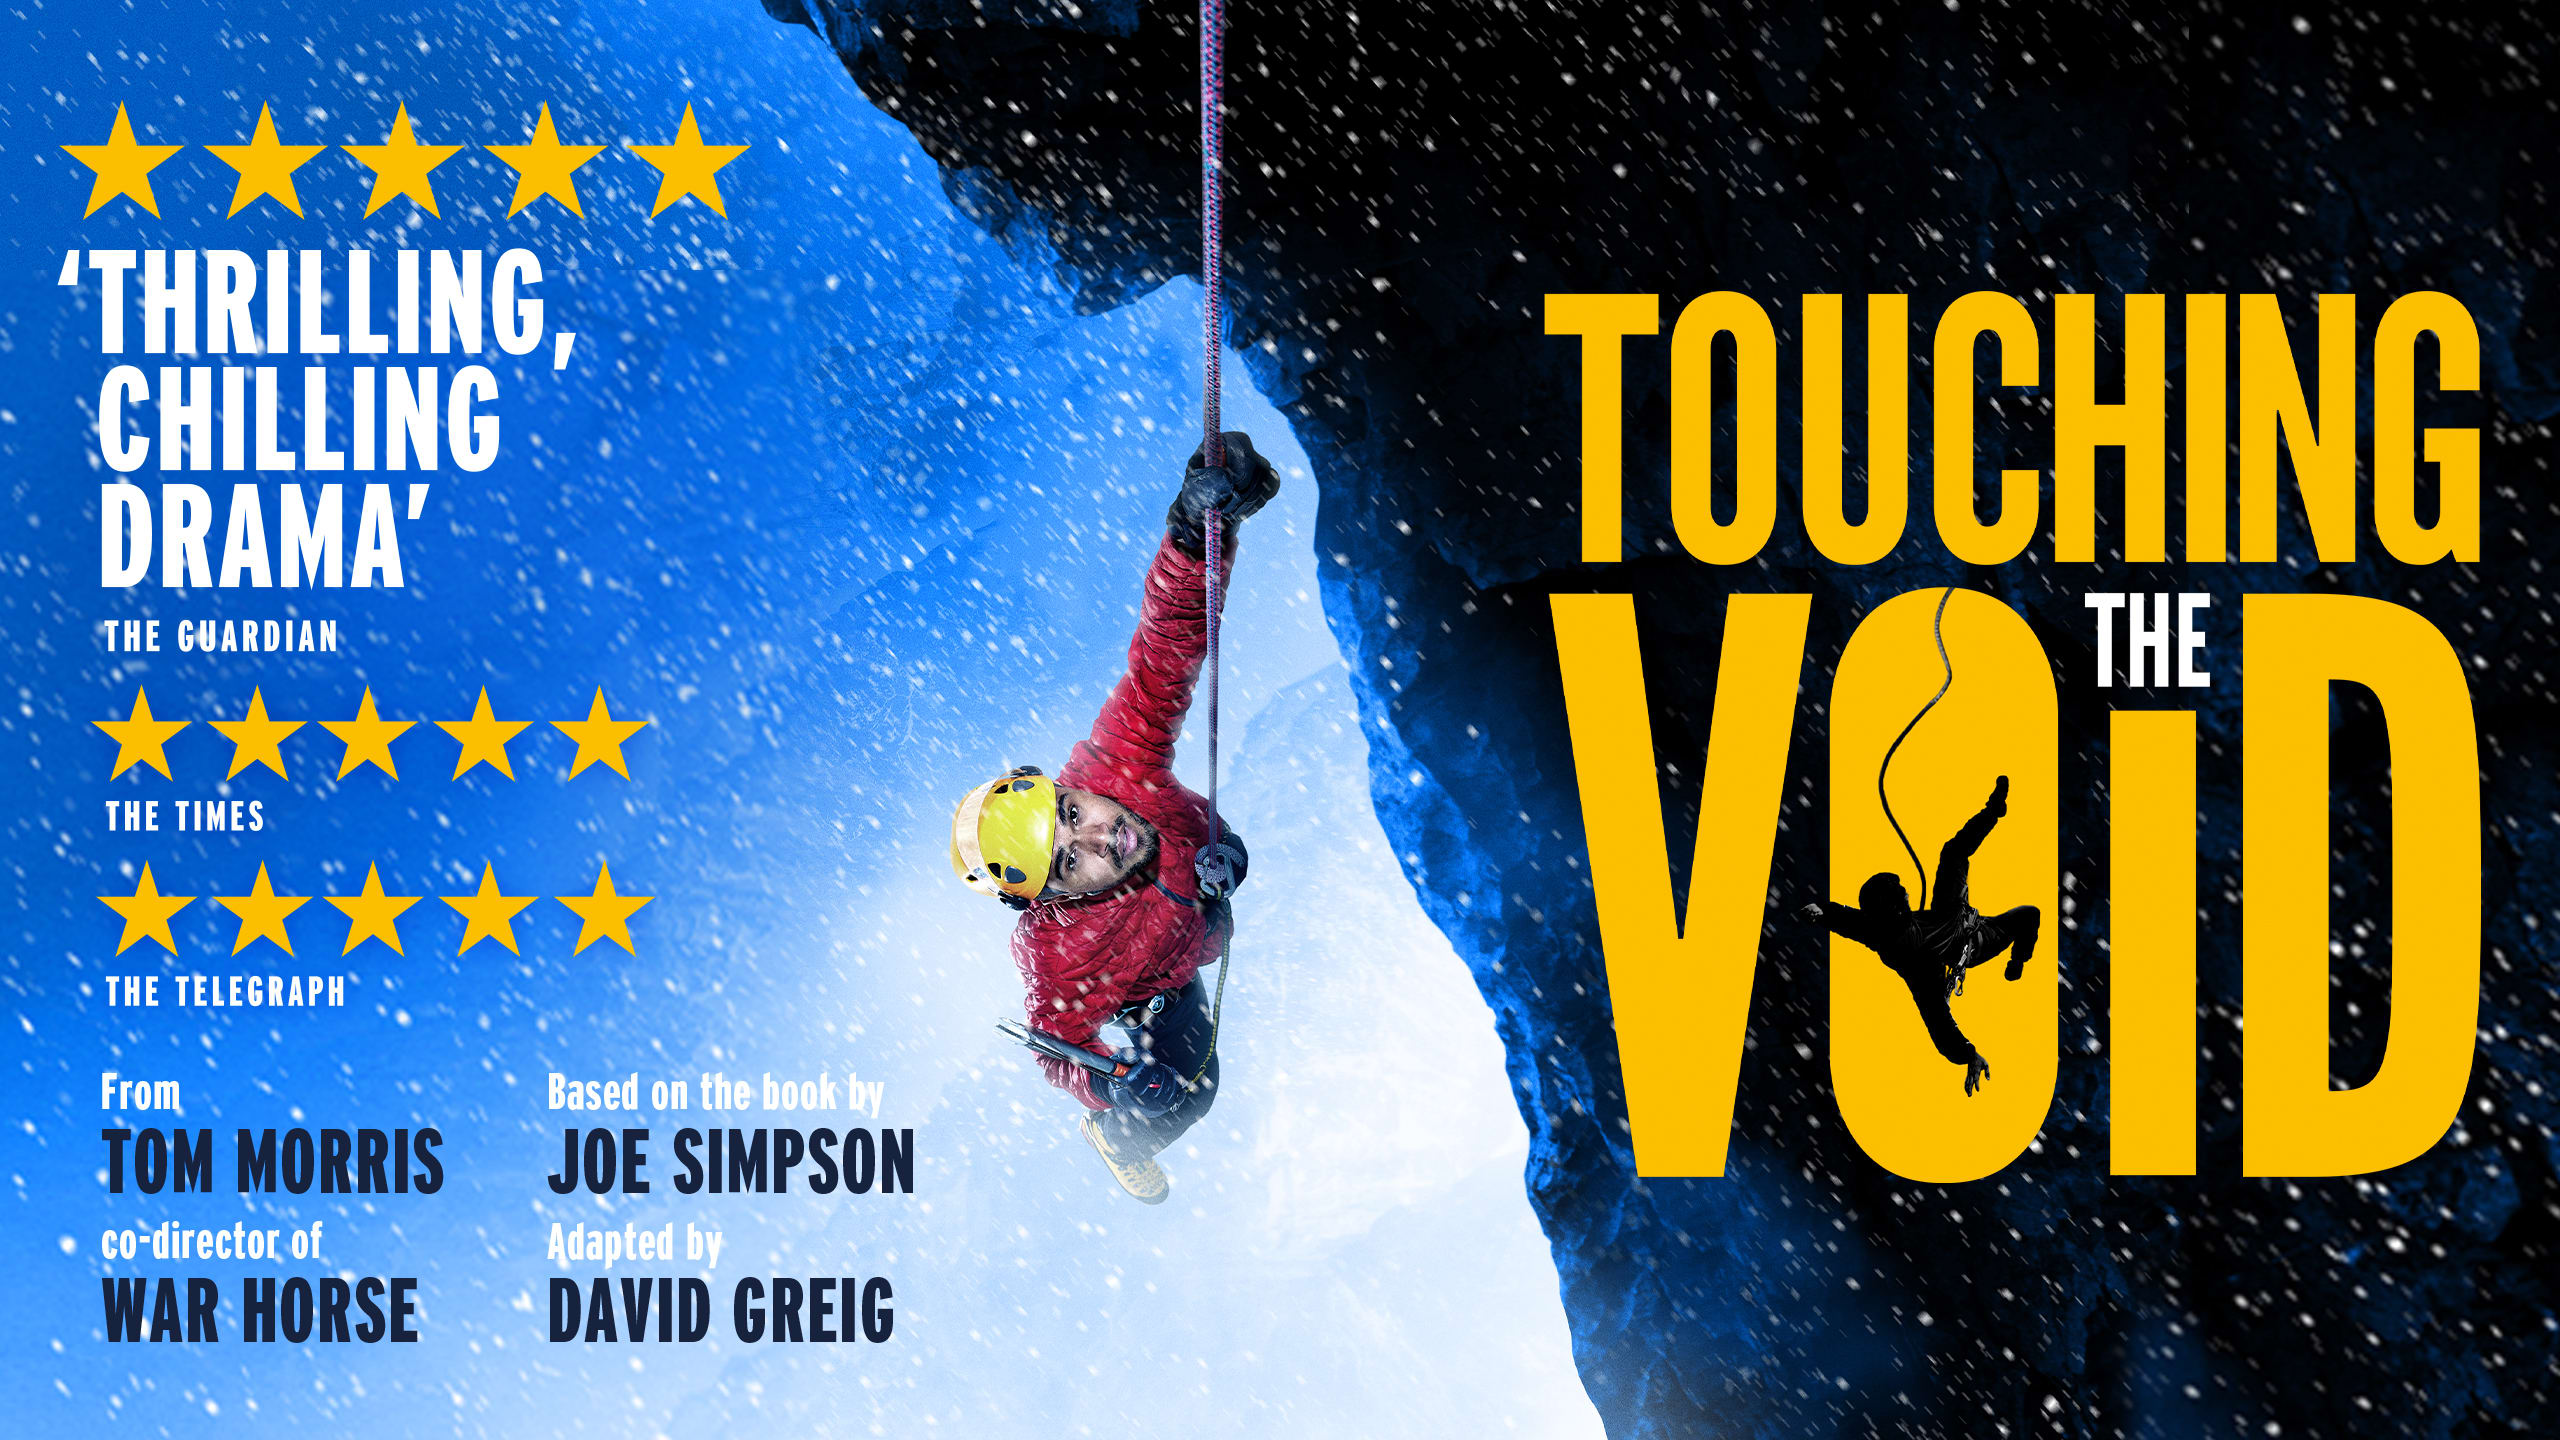 Touching The Void at Duke of York's Theatre